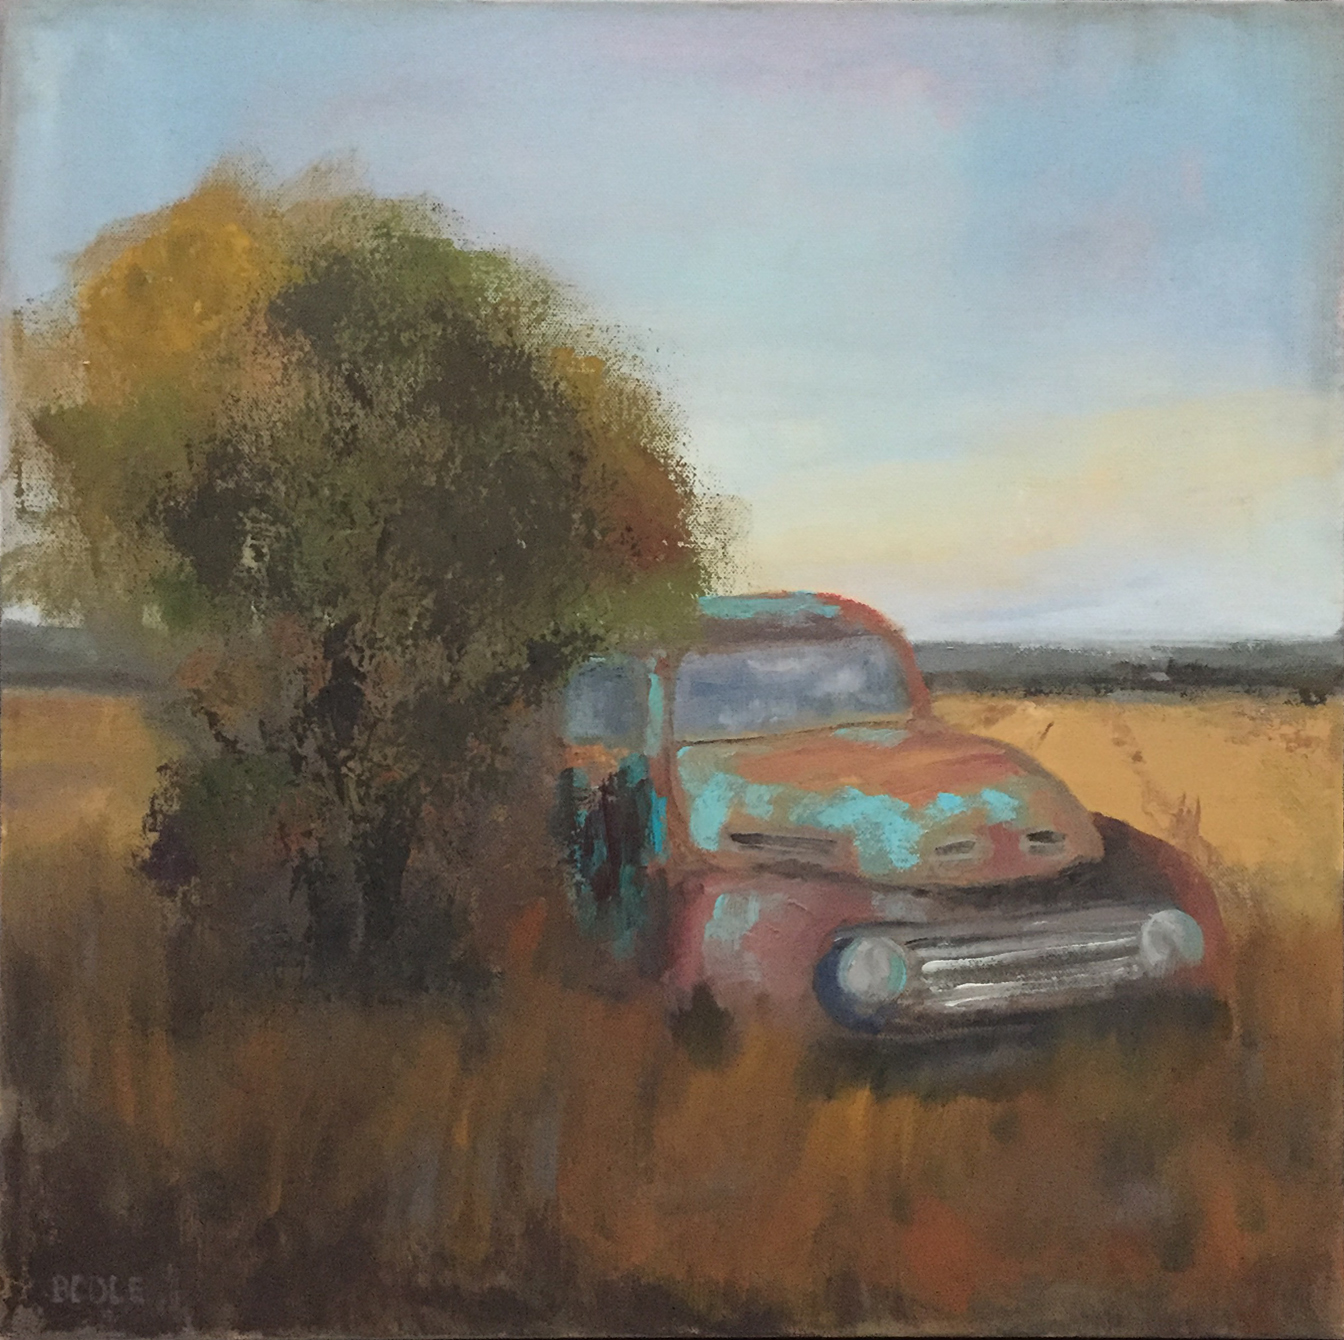 Parked for Good, ©Beth Cole, Oil on Canvas, 18 x 18